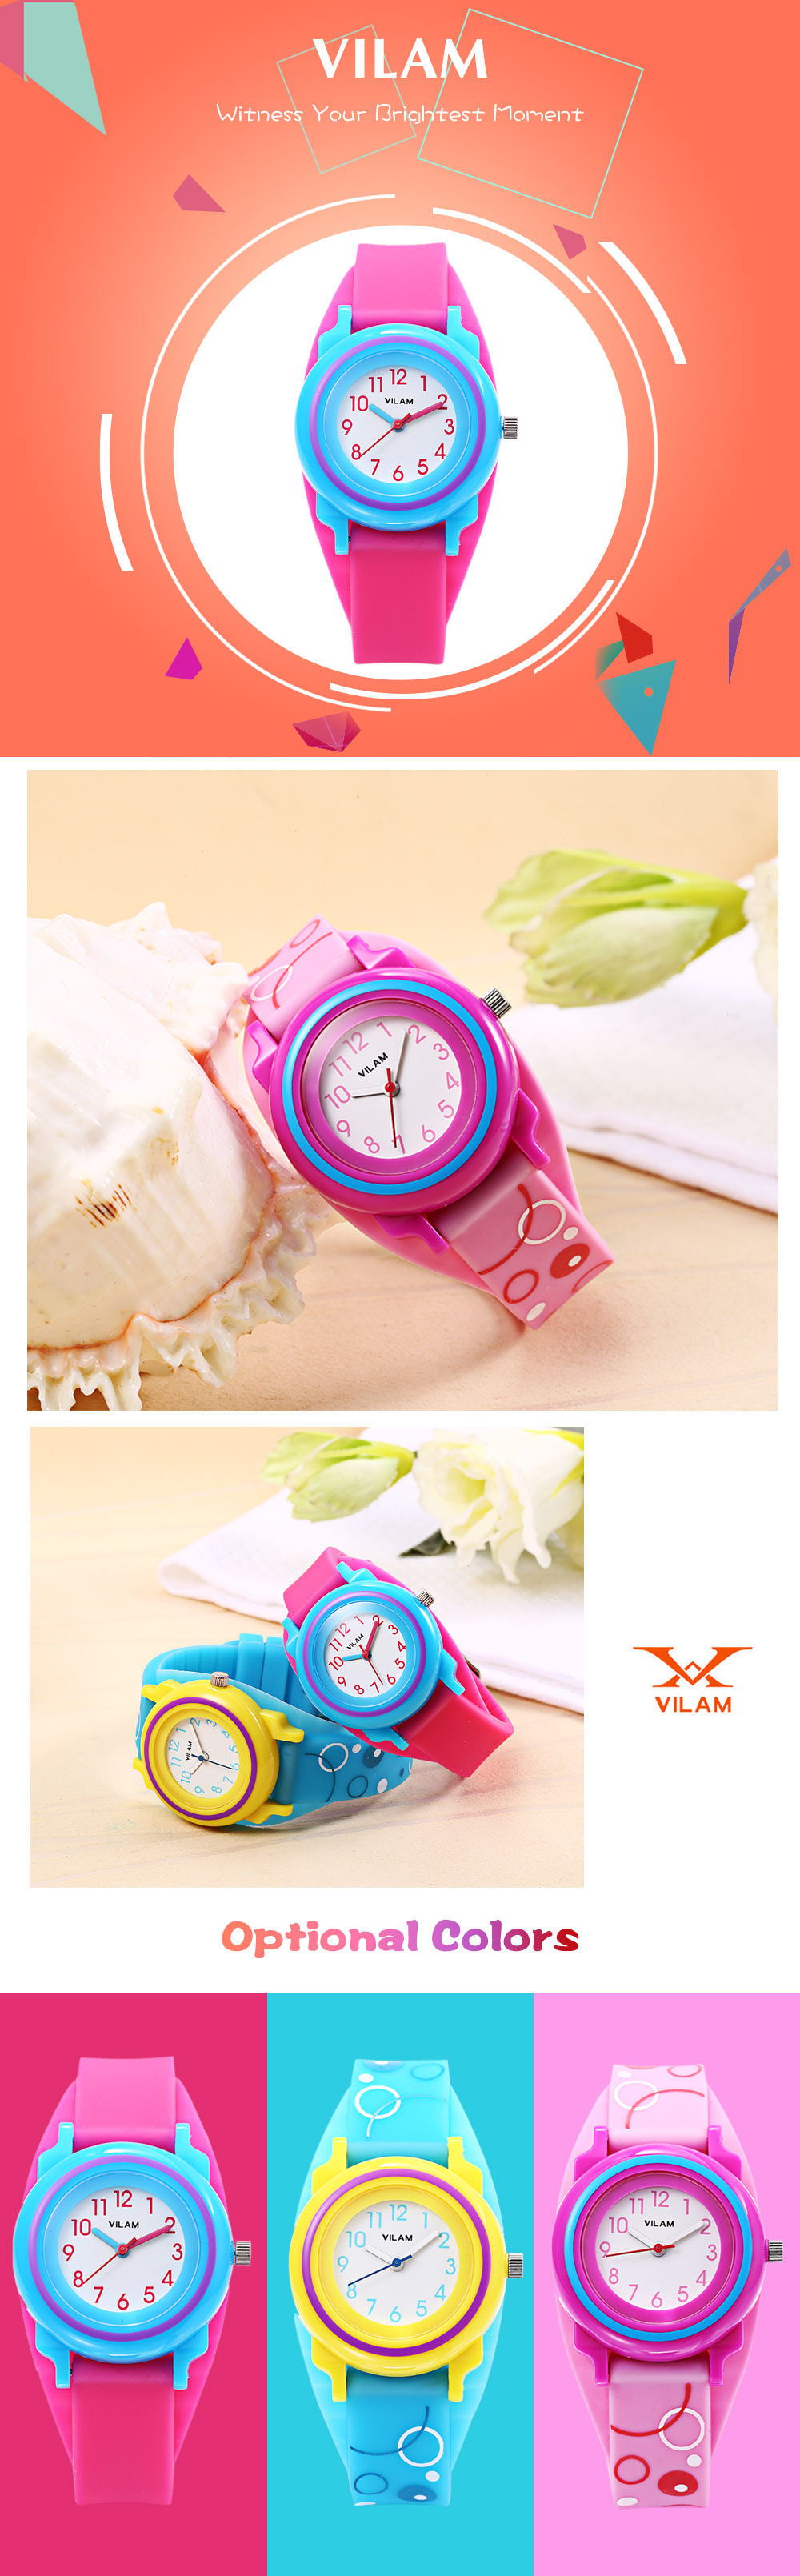 VILAM 11007 Children Quartz Watch Concise Dial Daily Water Resistance Silicone Band Wristwatch